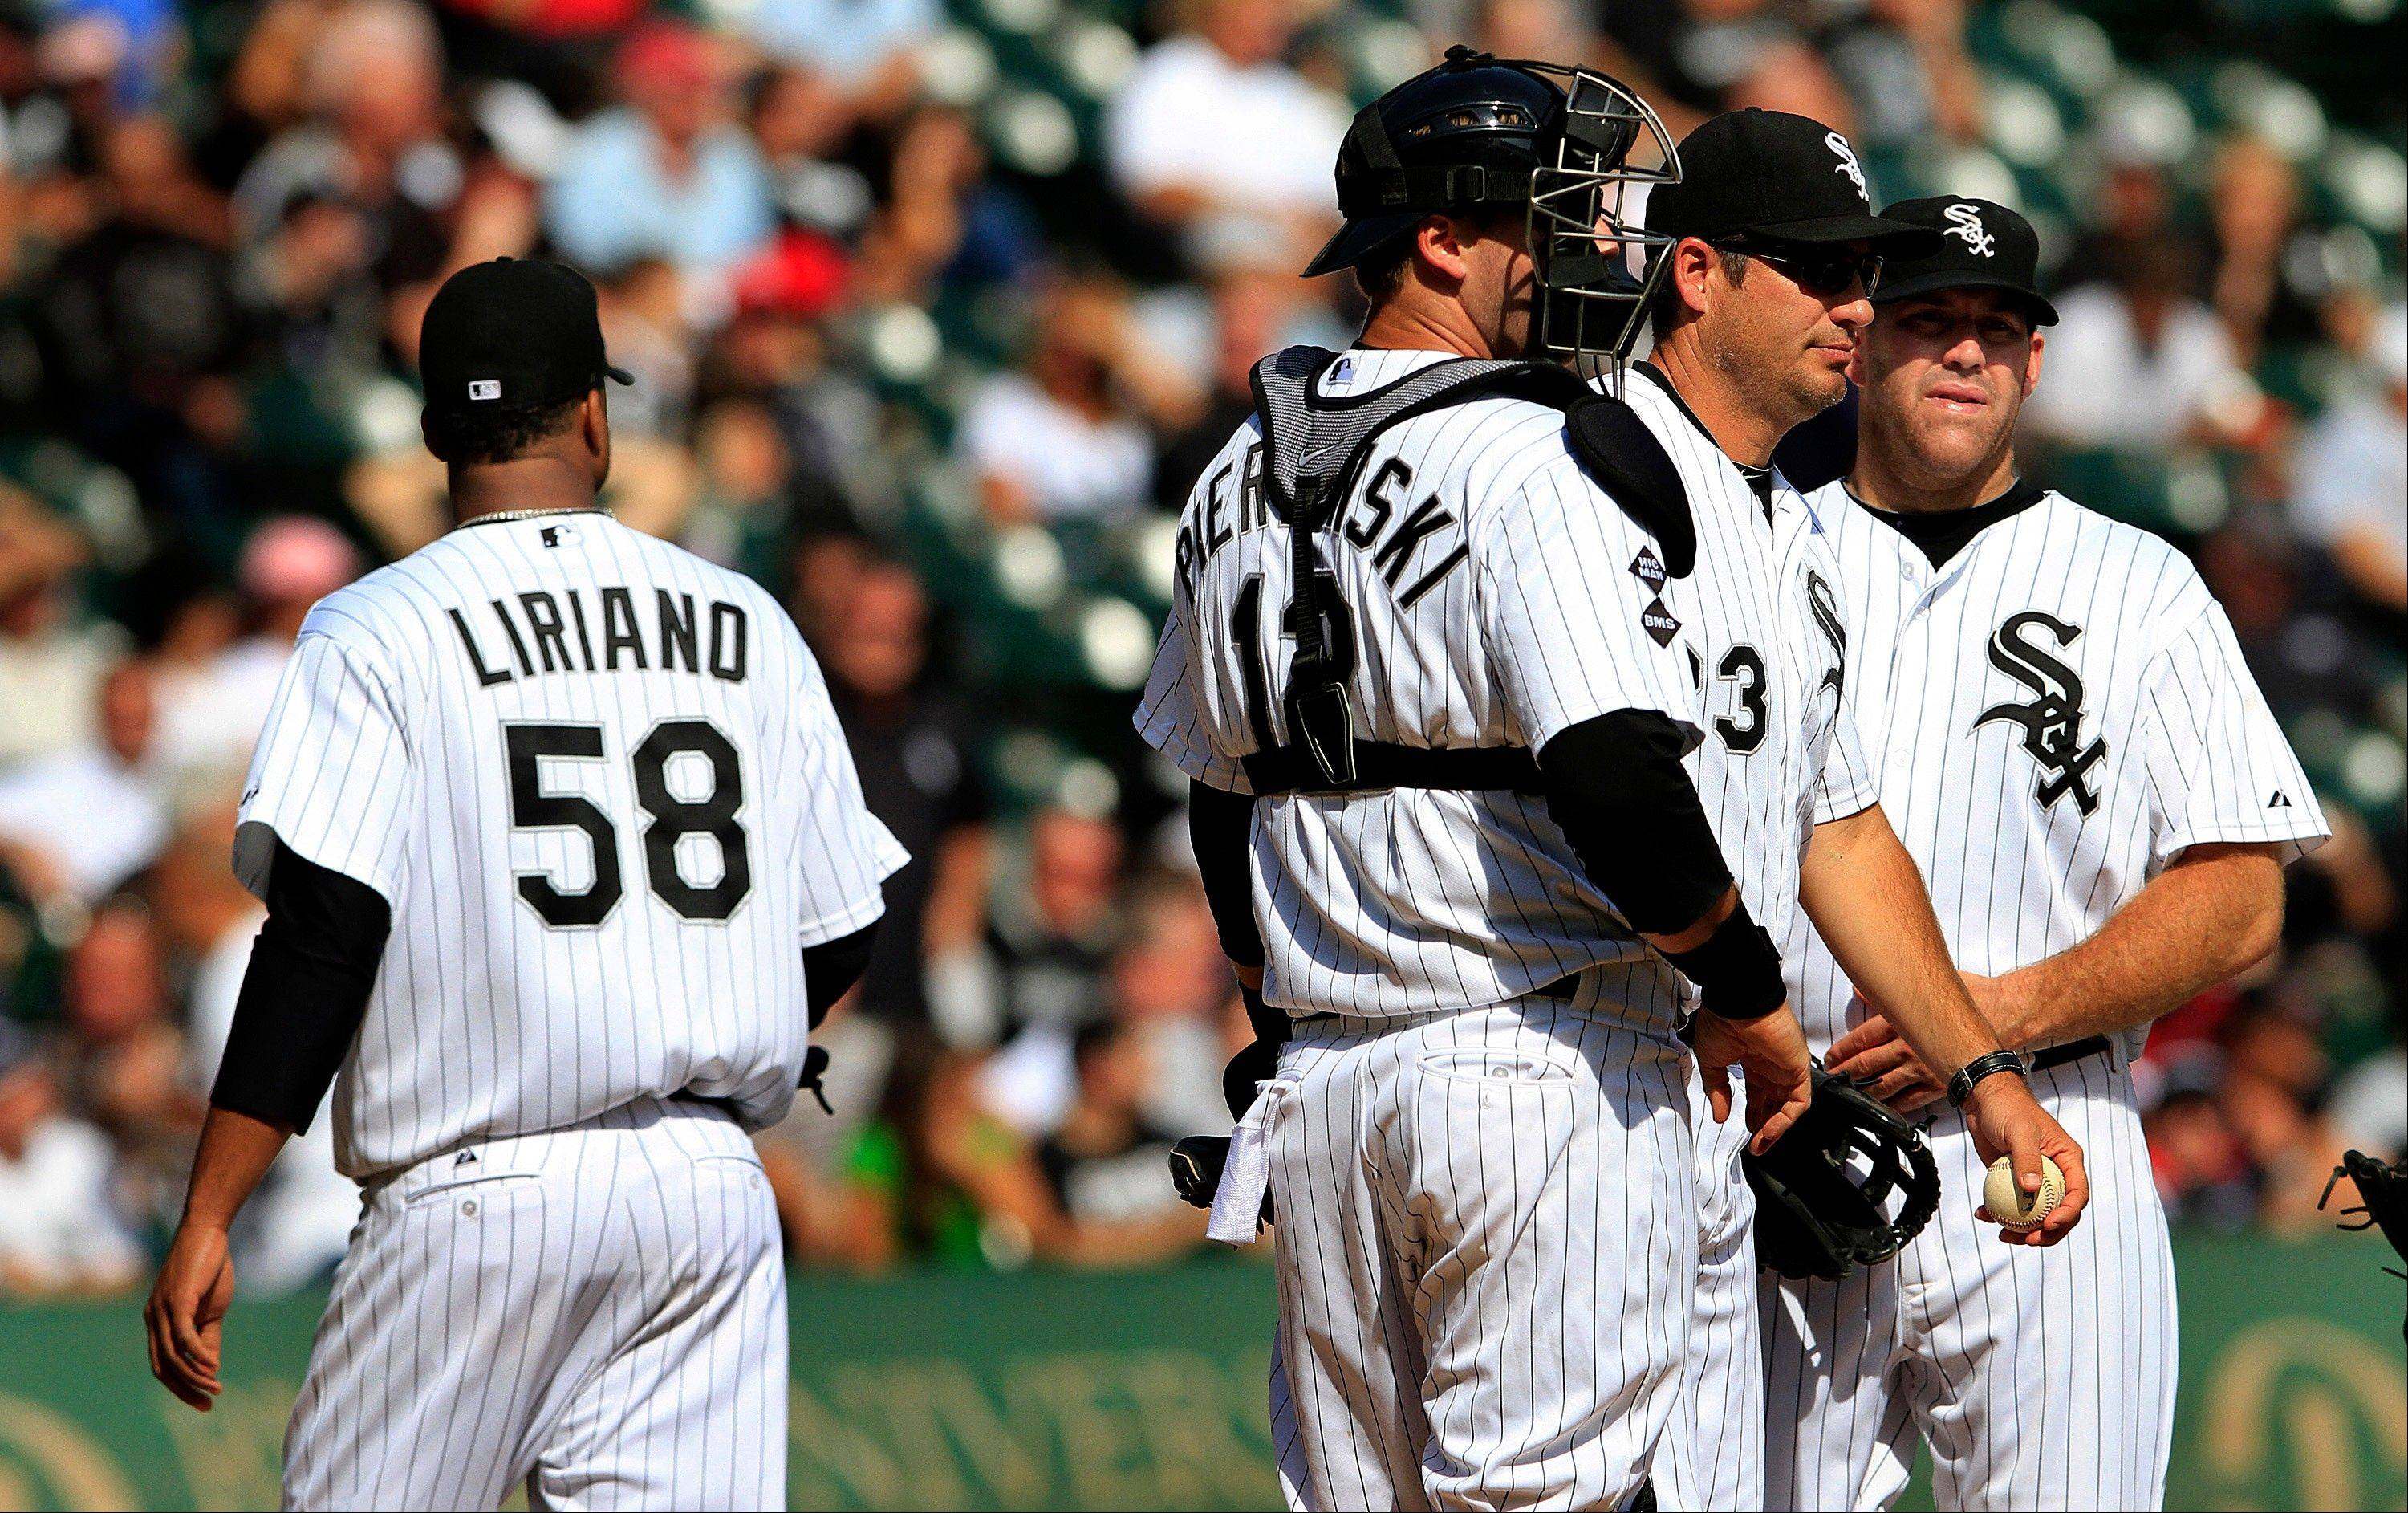 White Sox starting pitcher Francisco Liriano walks off the field after getting lifted by manager Robin Ventura, second from right, in the fourth inning Tuesday at U.S. Cellular Field.